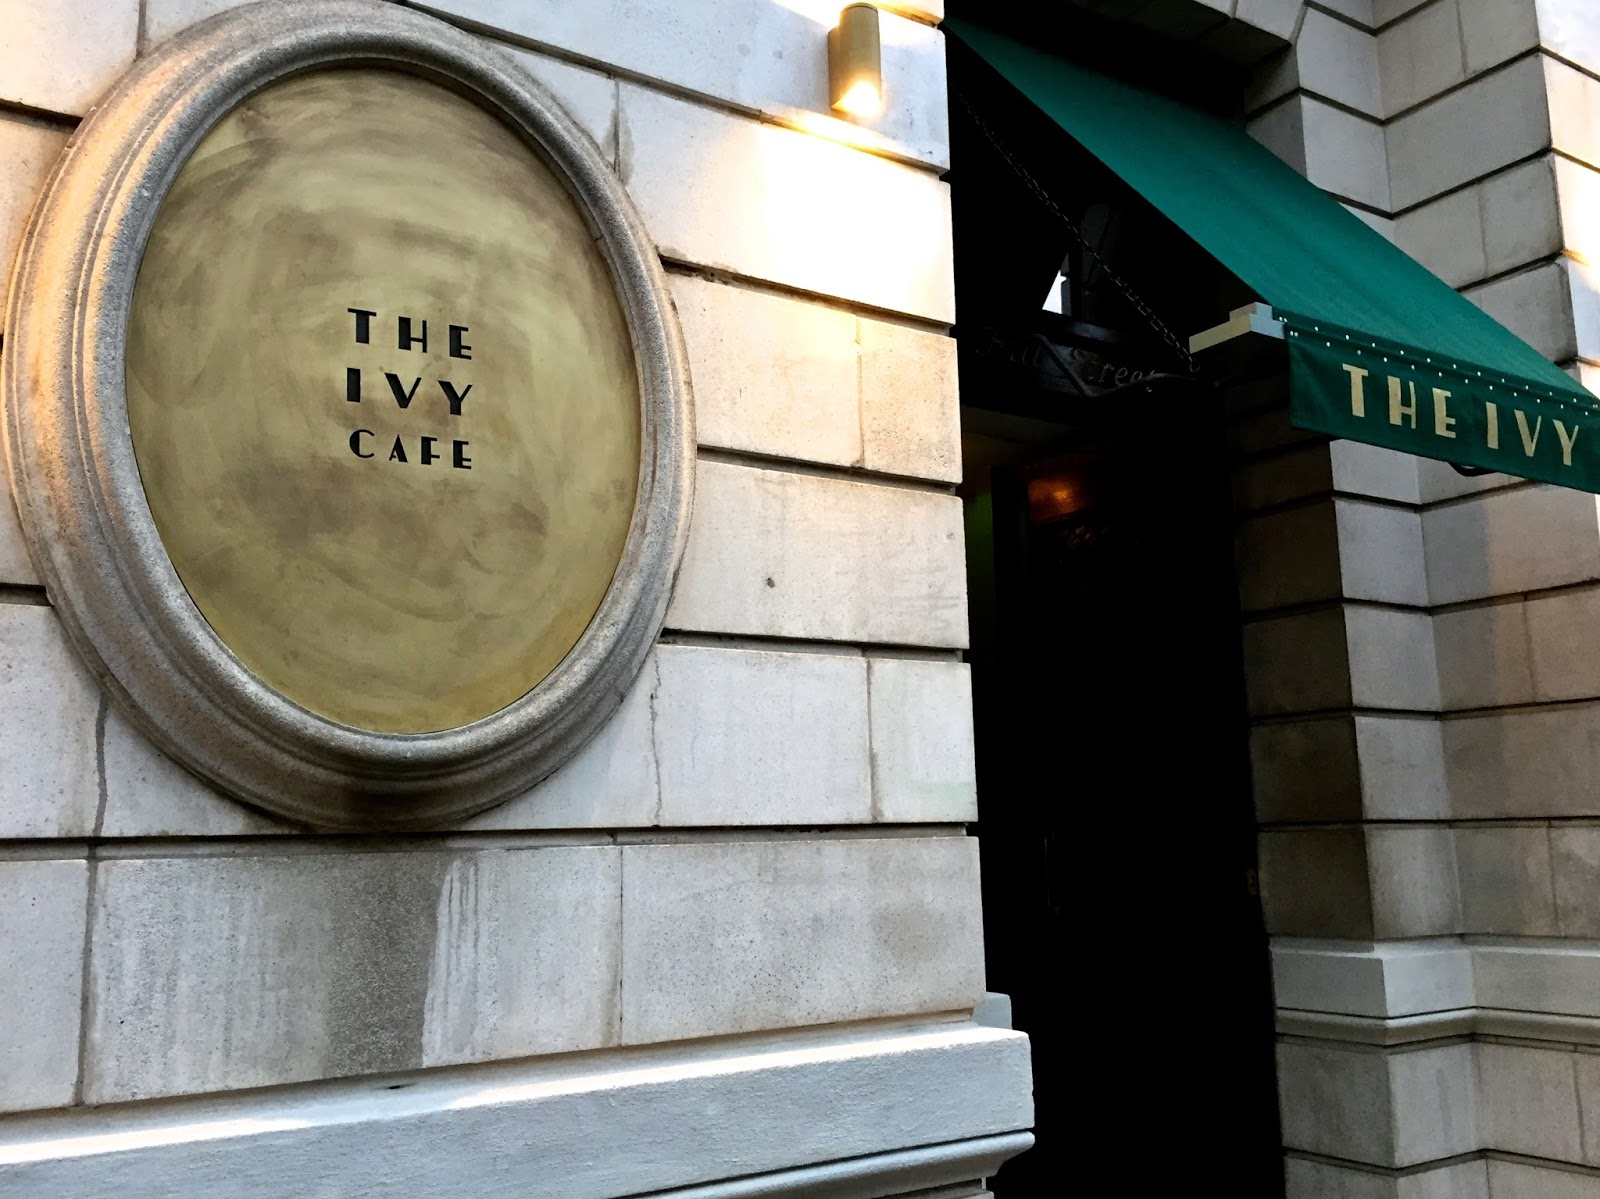 The Ivy Cafe